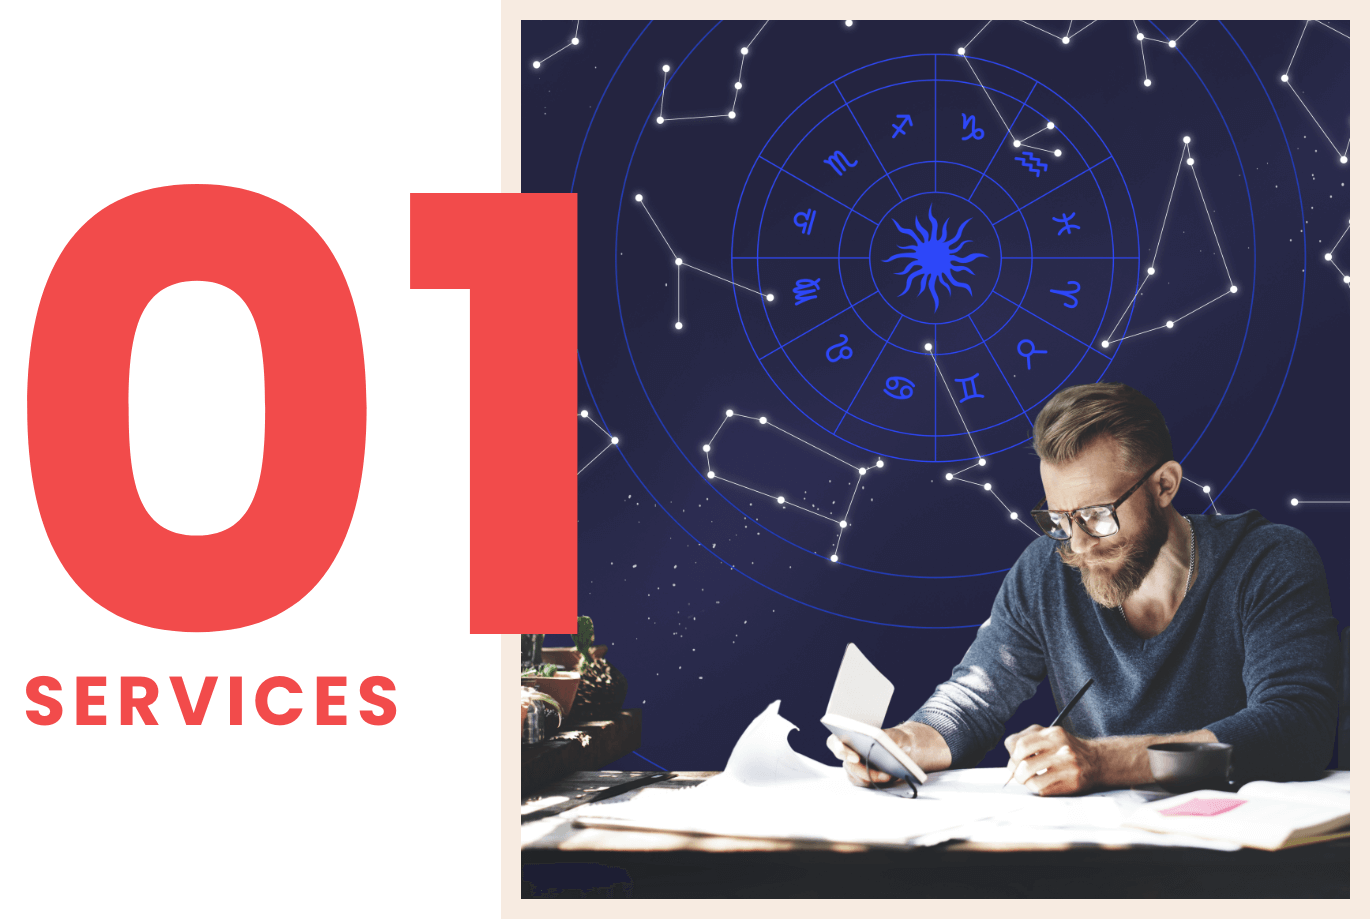 Want to know how to transcend your astrological influences? Or are you looking for a hands-on healing session. - I can help! With an astrological chart reading, you can get the insight and foresight you need to overcome cosmic influences and optimize life to the fullest.CHECK OUT MY SERVICES →